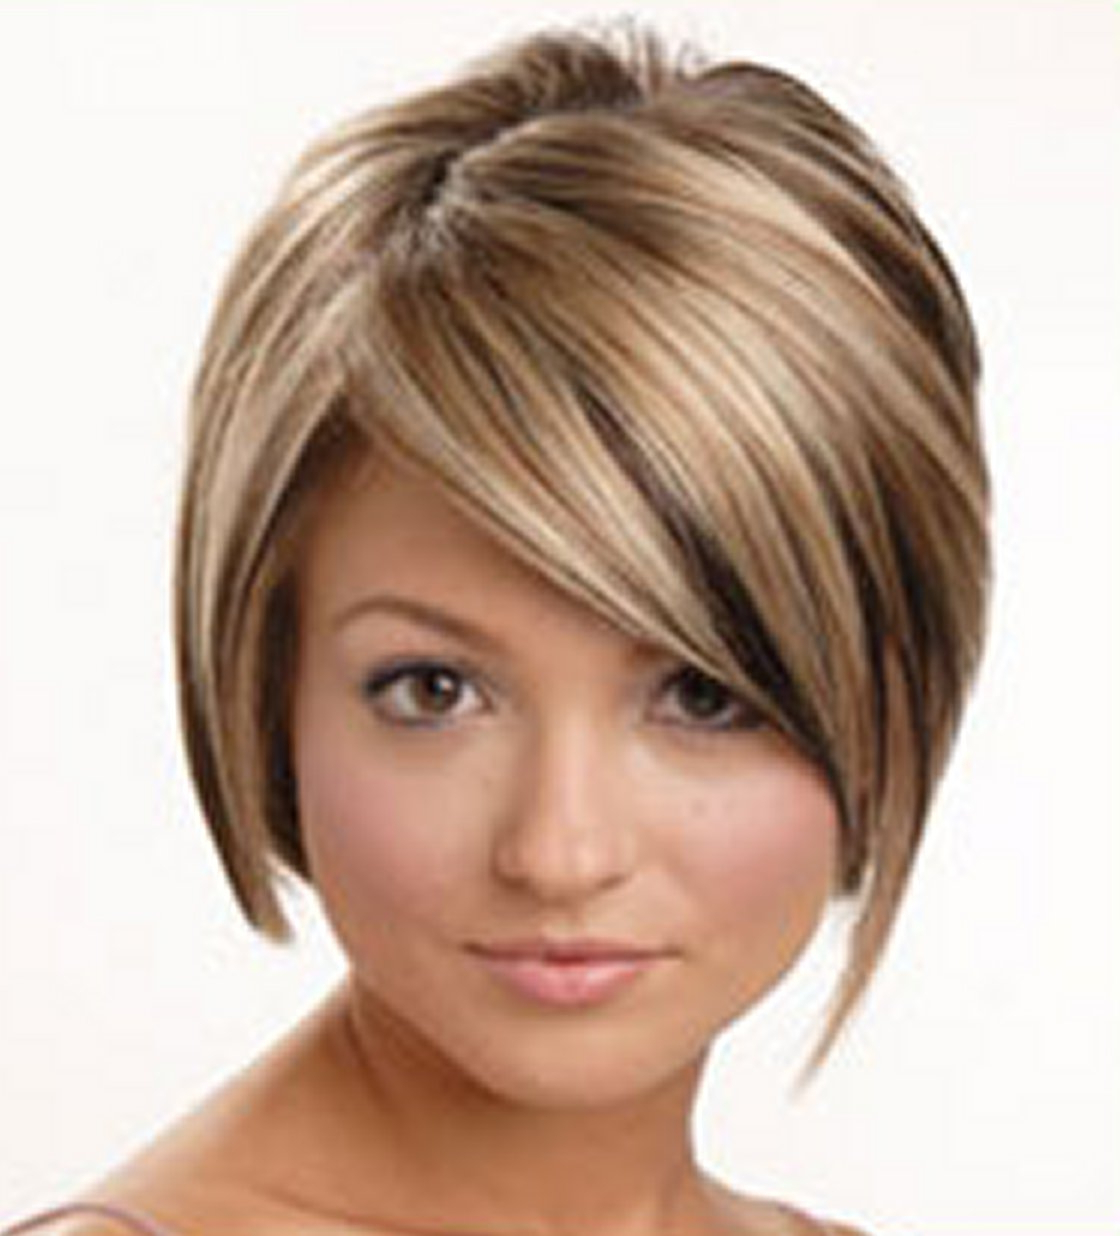 Nana Hairstyle Ideas: New Short Hairstyles For Women Regarding Short Hair Cuts For Teenage Girls (View 17 of 25)